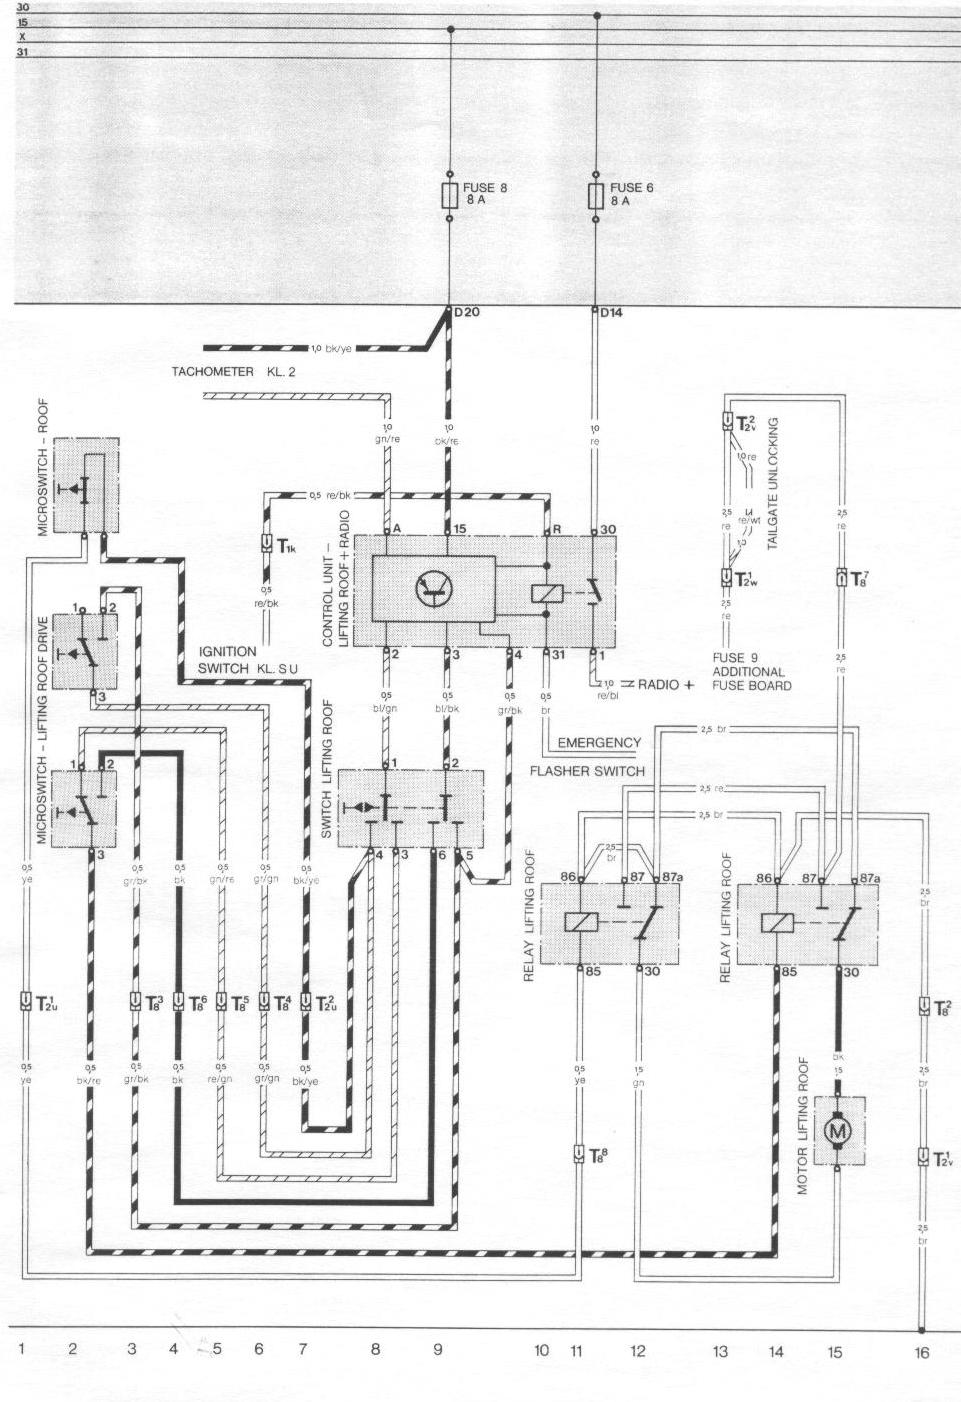 Porsche 944 Ignition Switch Wiring Diagram Libraries Ferrari 308 83 Diagrams83 Third Level